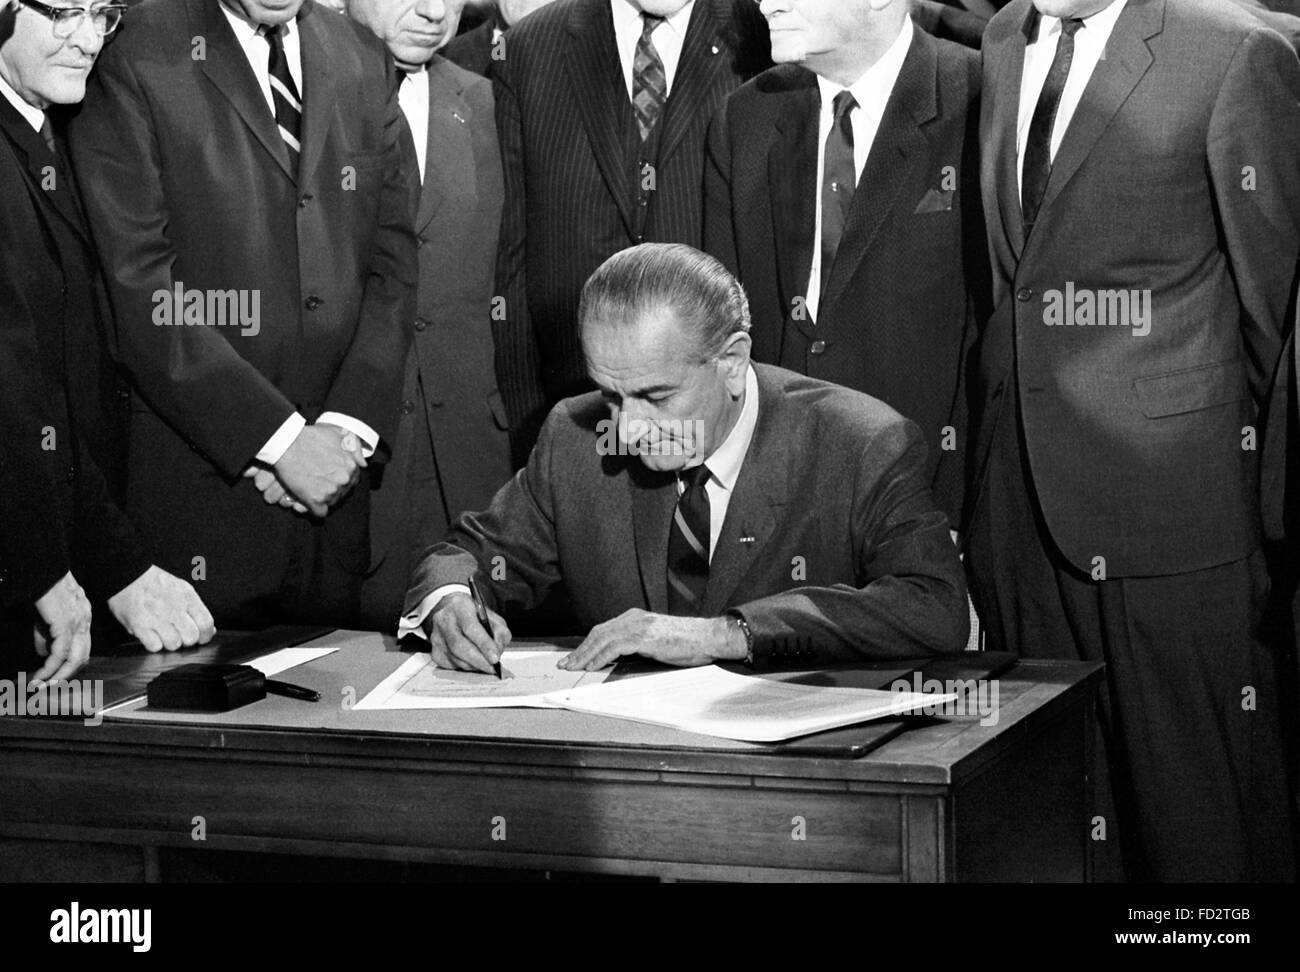 Lyndon B Johnson, the 36th President of the USA, signing the 1968 Civil Rights Bill, 11th April 1968 - Stock Image